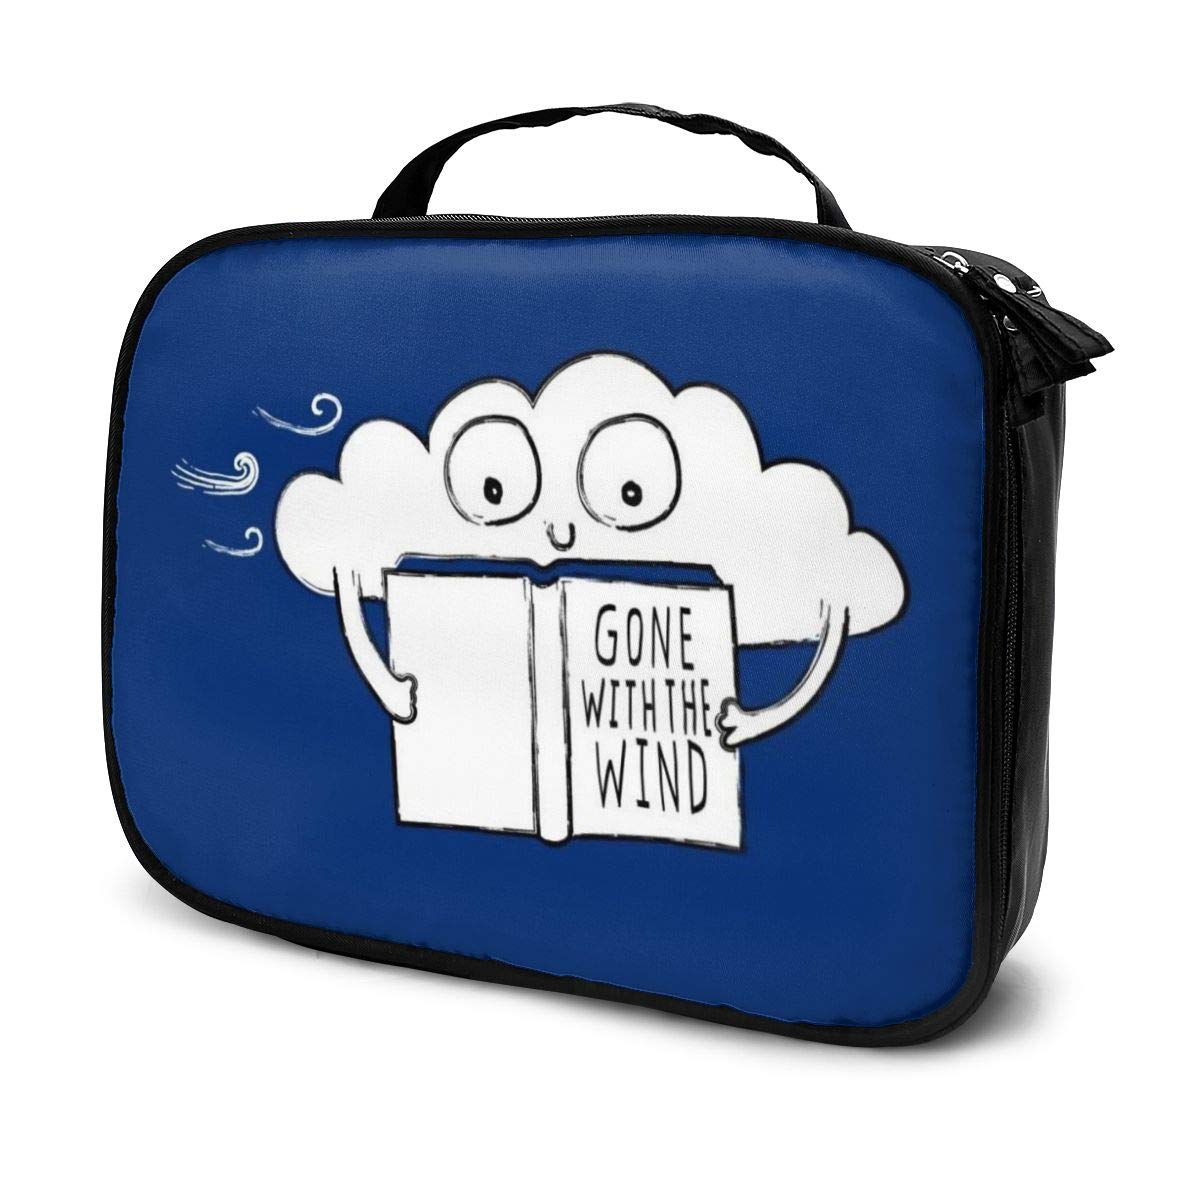 Makeup Bag Cosmetic Pouch Gone With The Wind Reading Cloud Multi-Functional Bag Travel Kit